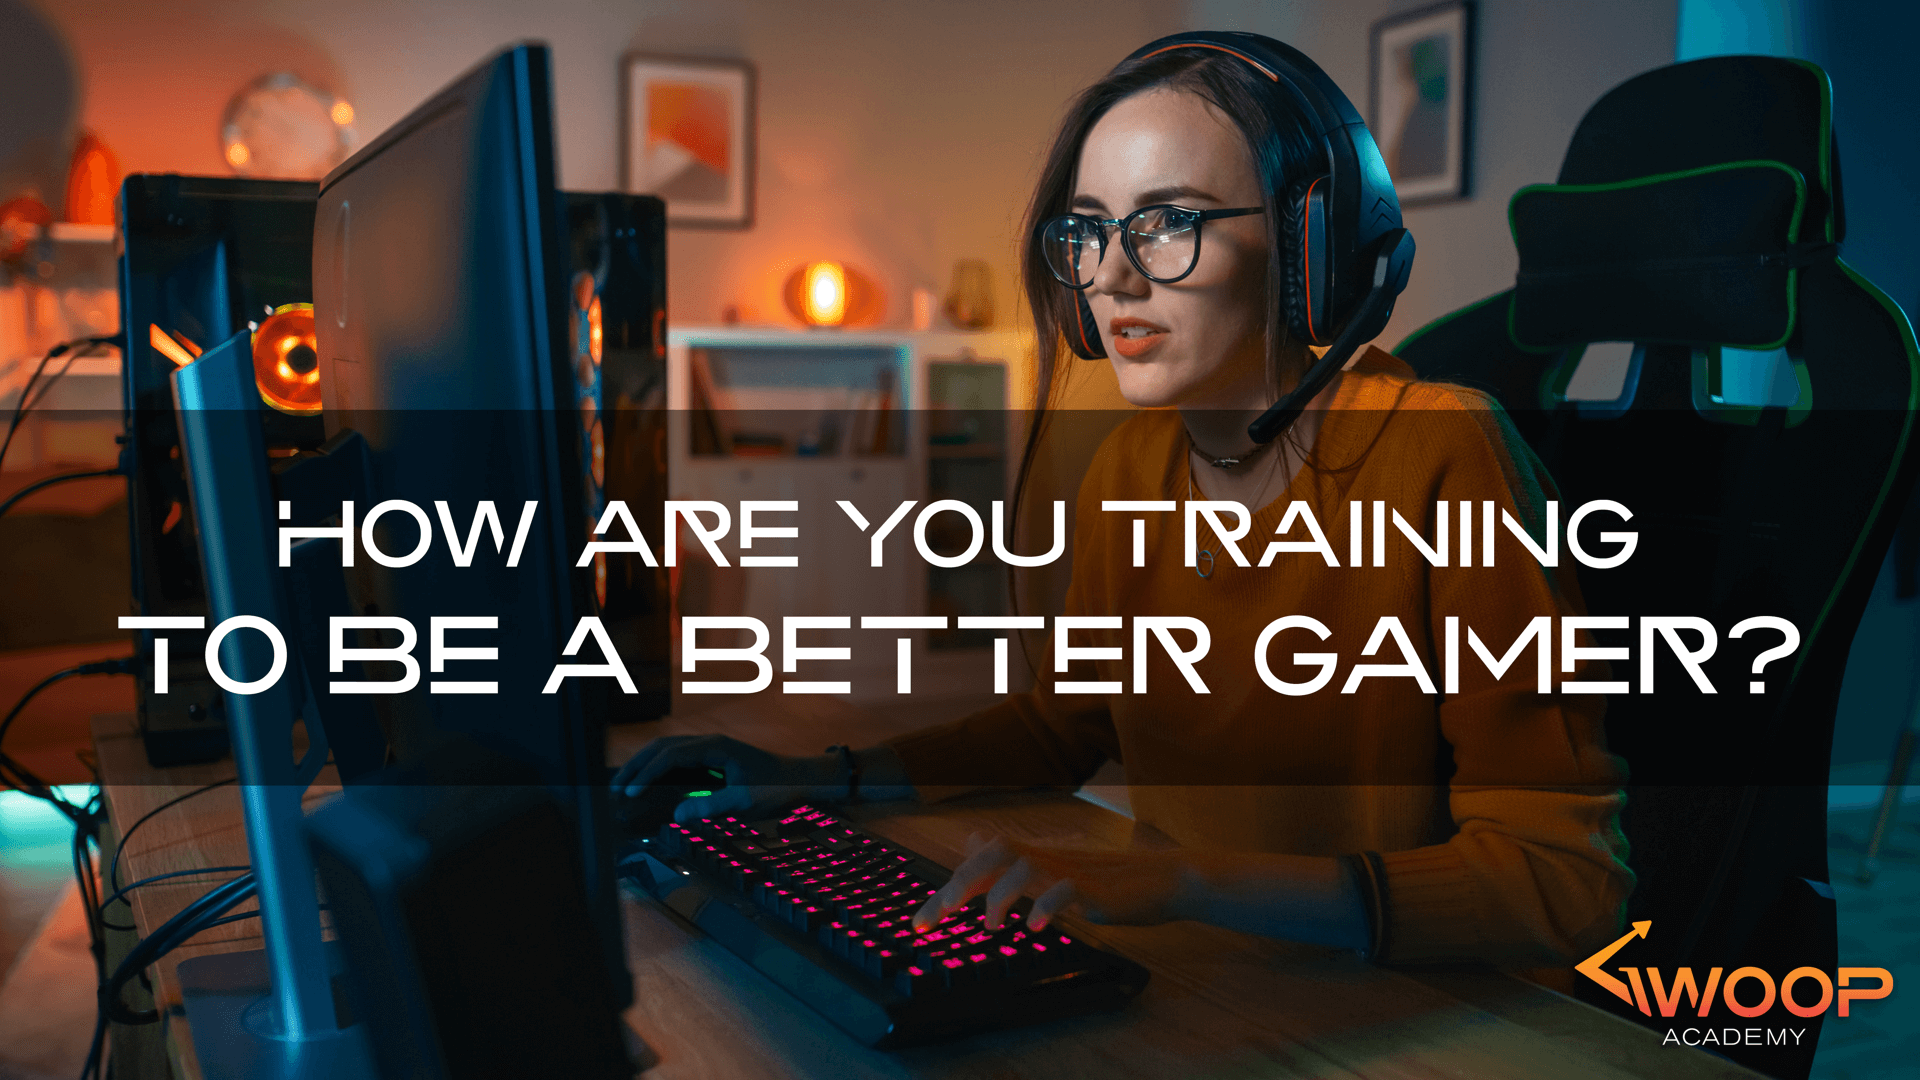 Gwoop Academy: Training to Be the Best in eSports